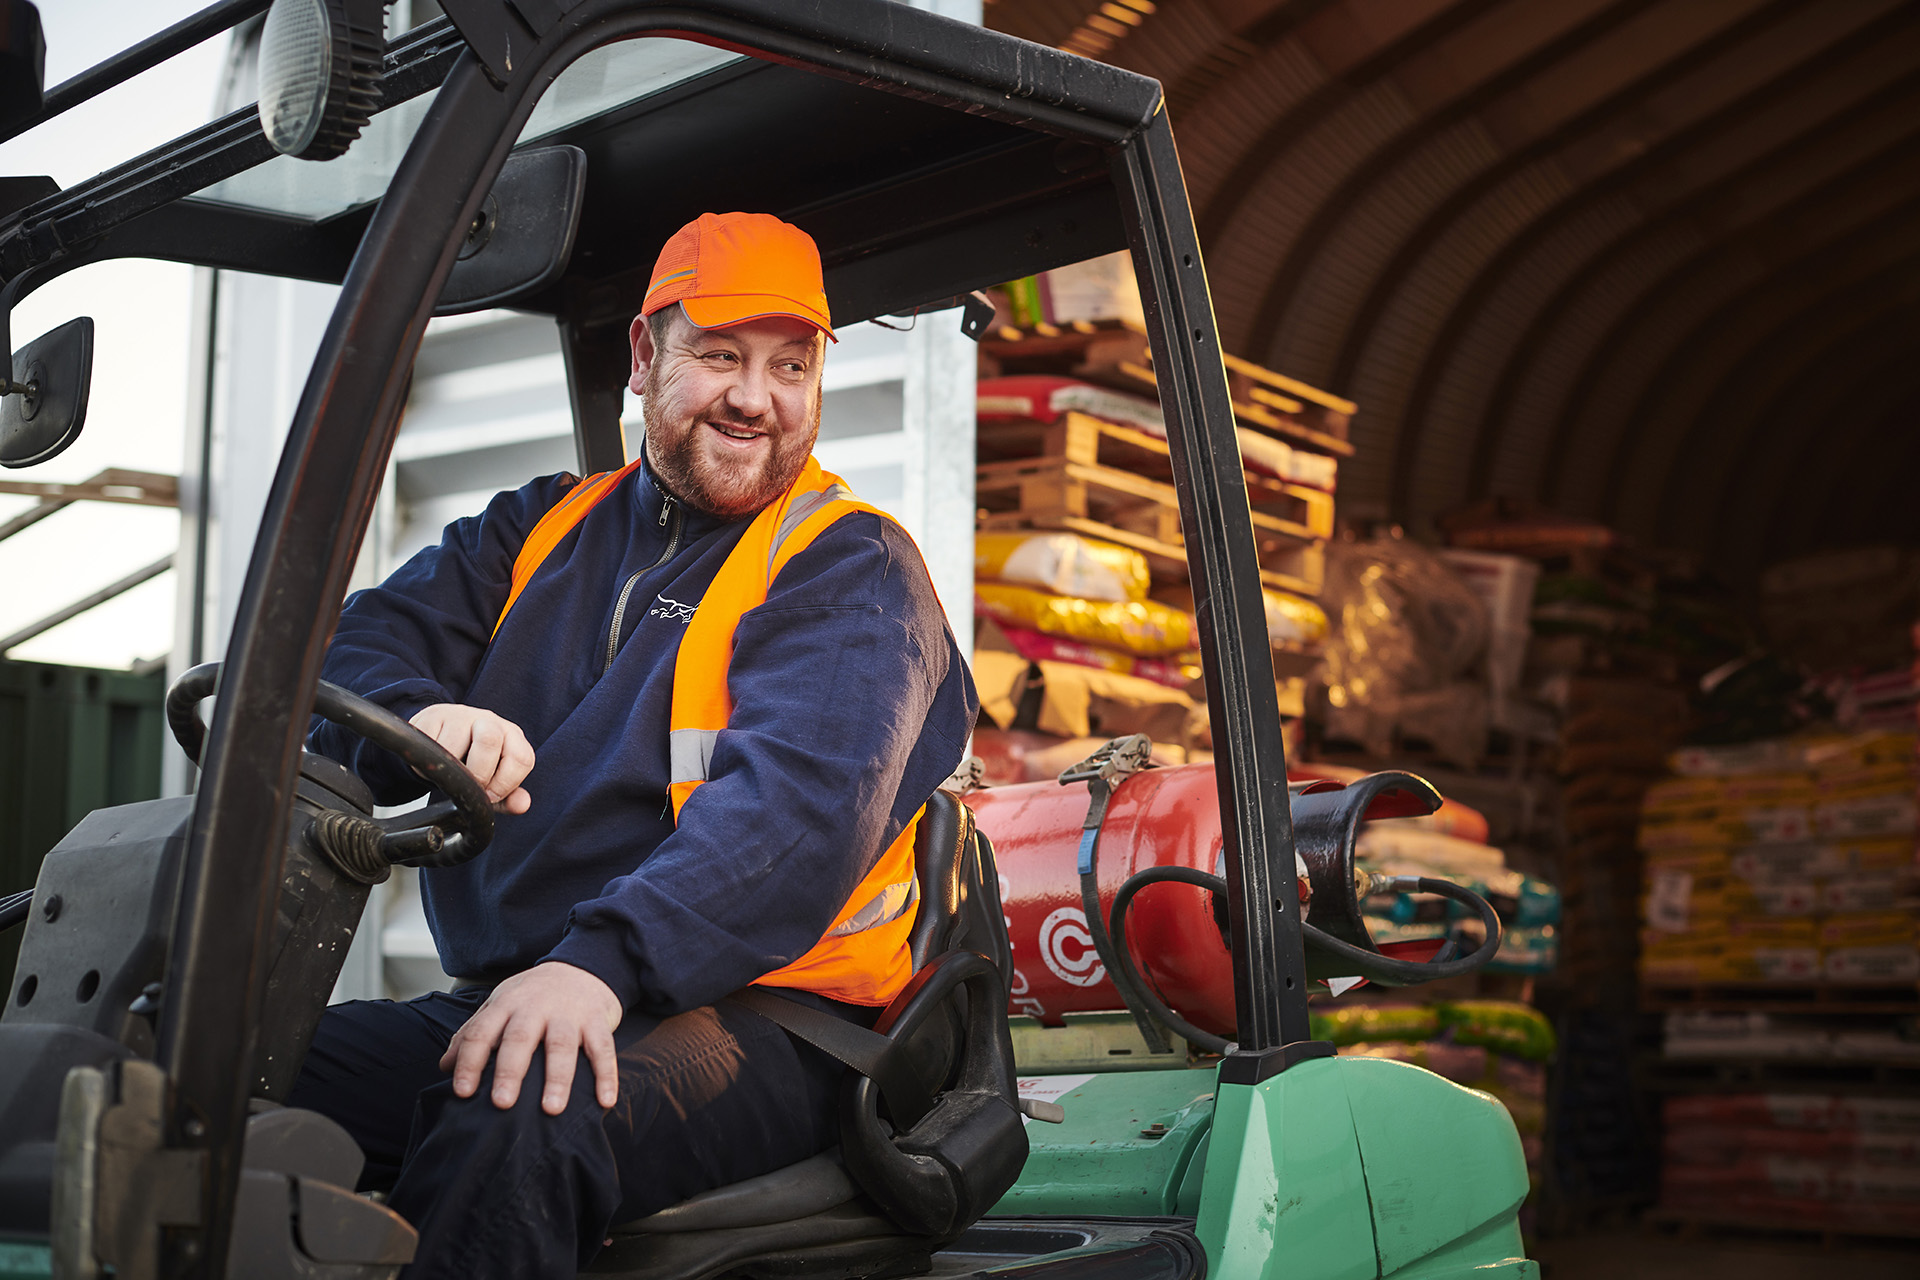 A driver steering a Calor powered forklift truck